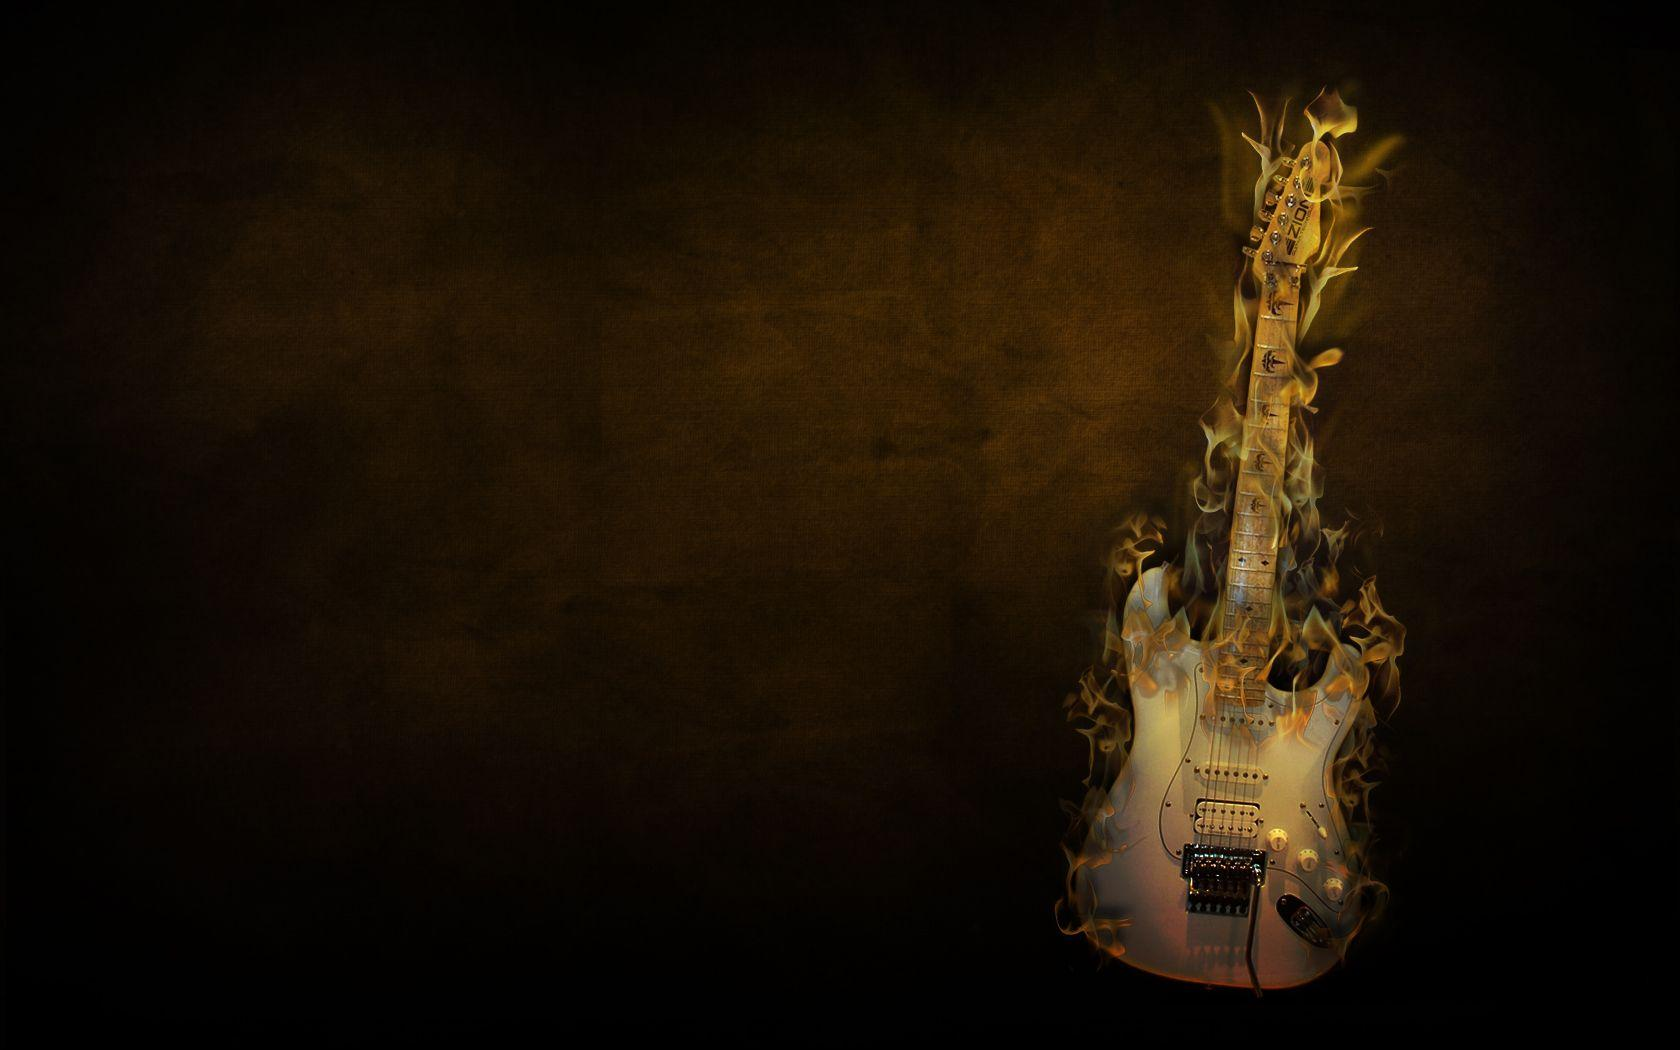 A Guitar Wallpapers